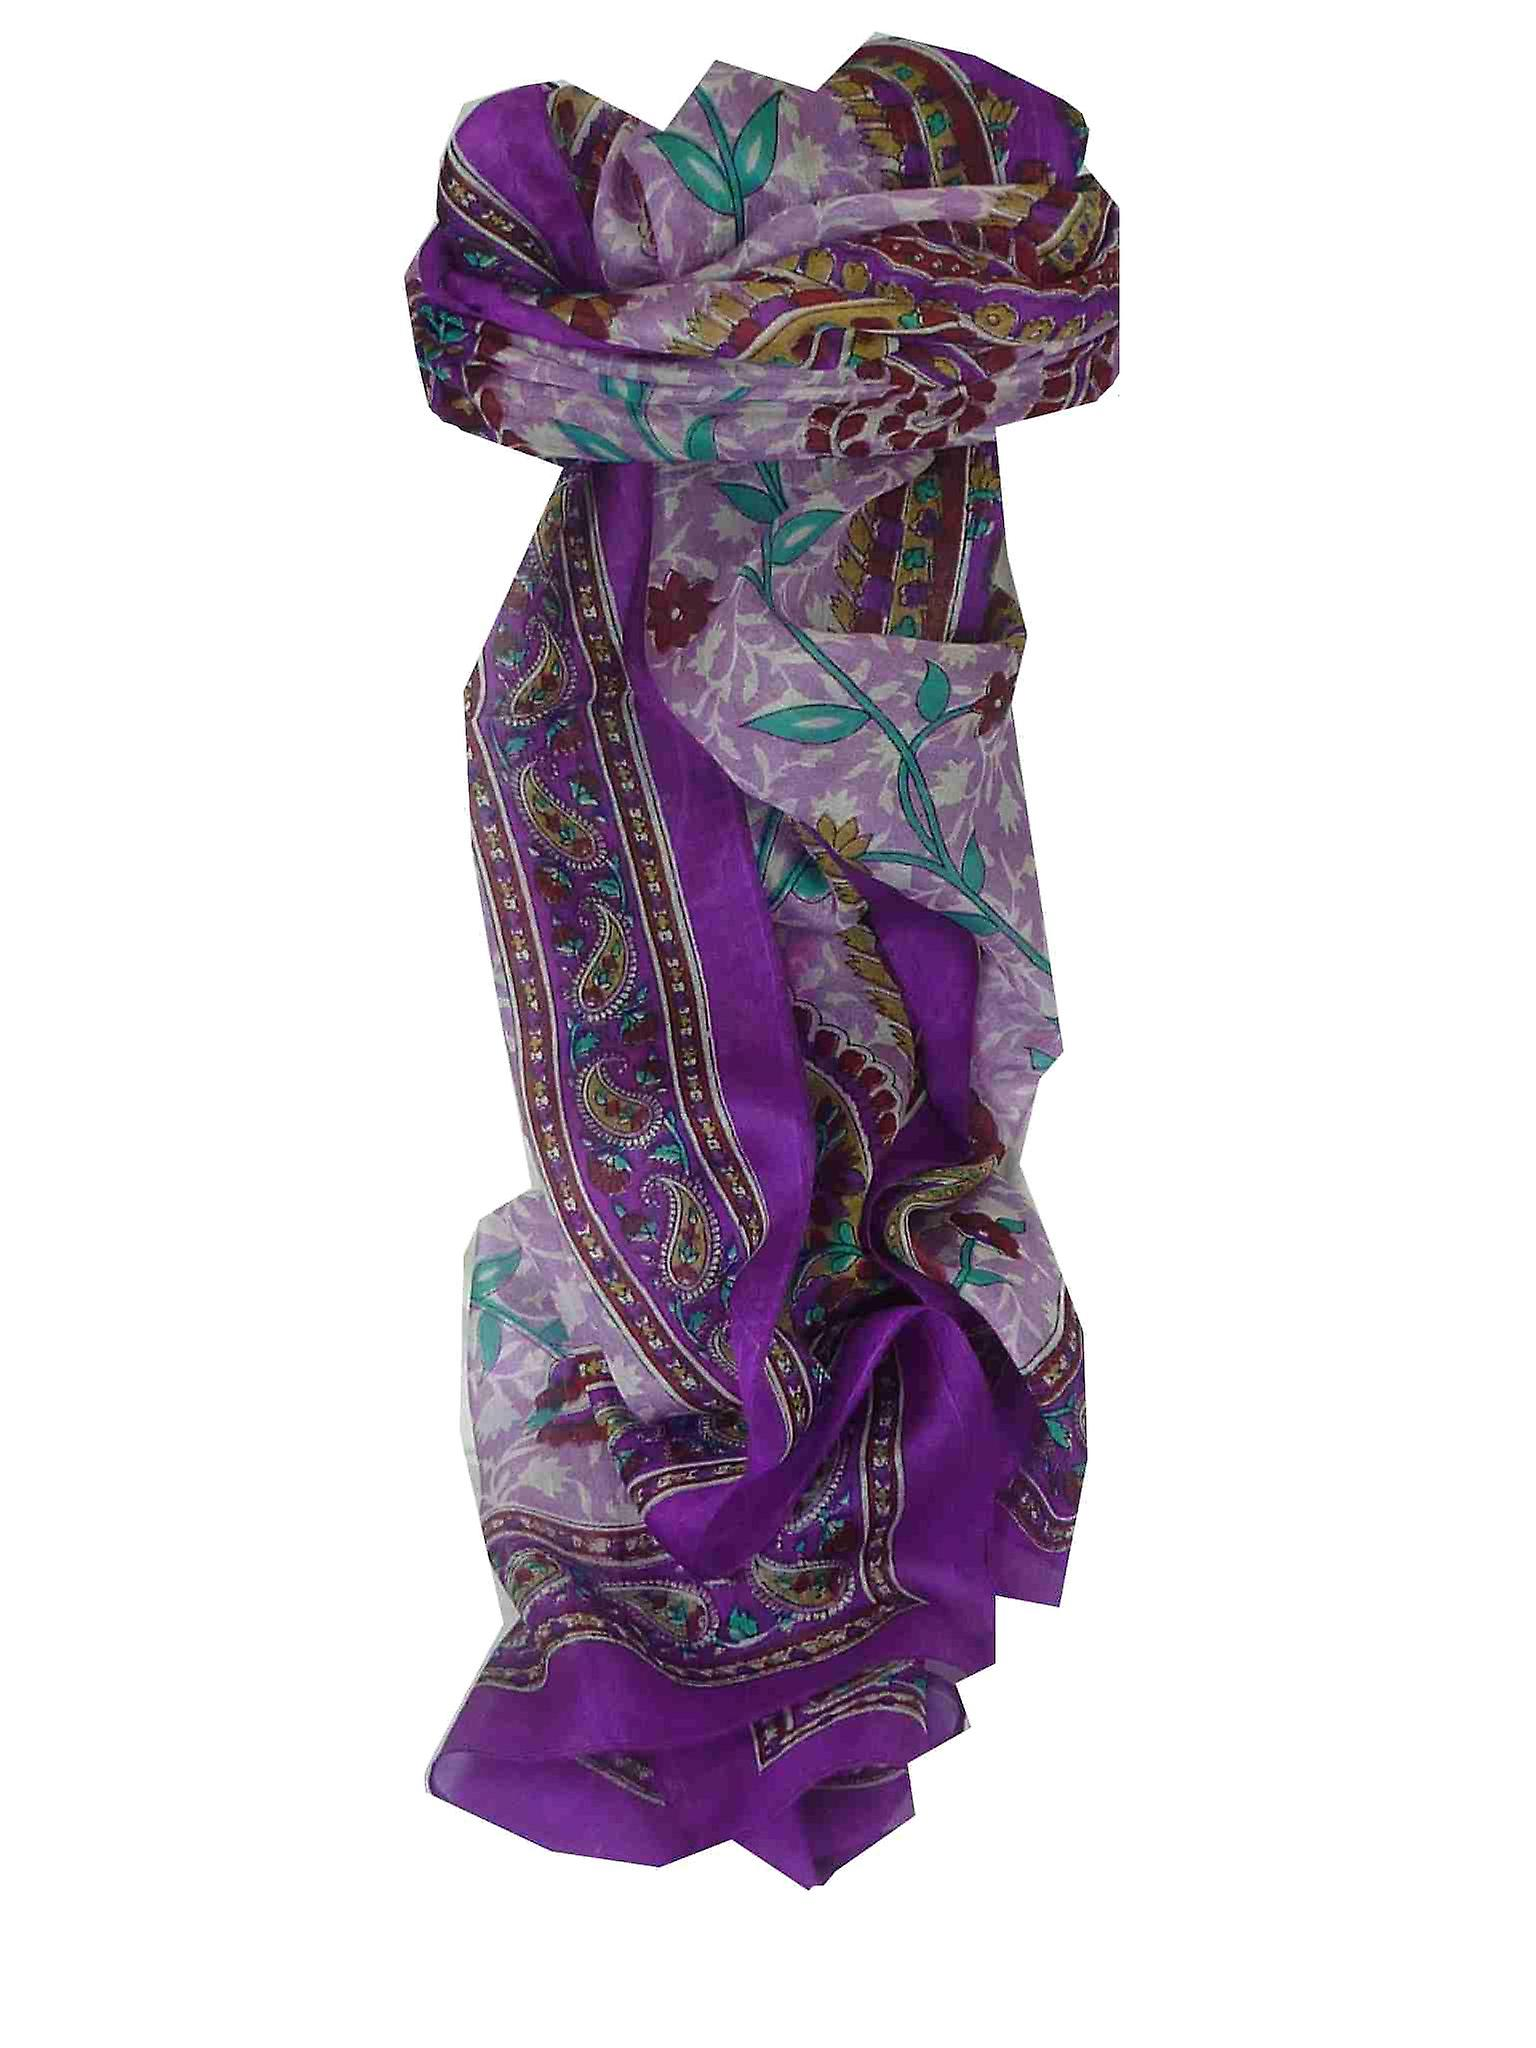 Mulberry Silk Traditional Long Scarf Sonja Violet by Pashmina & Silk